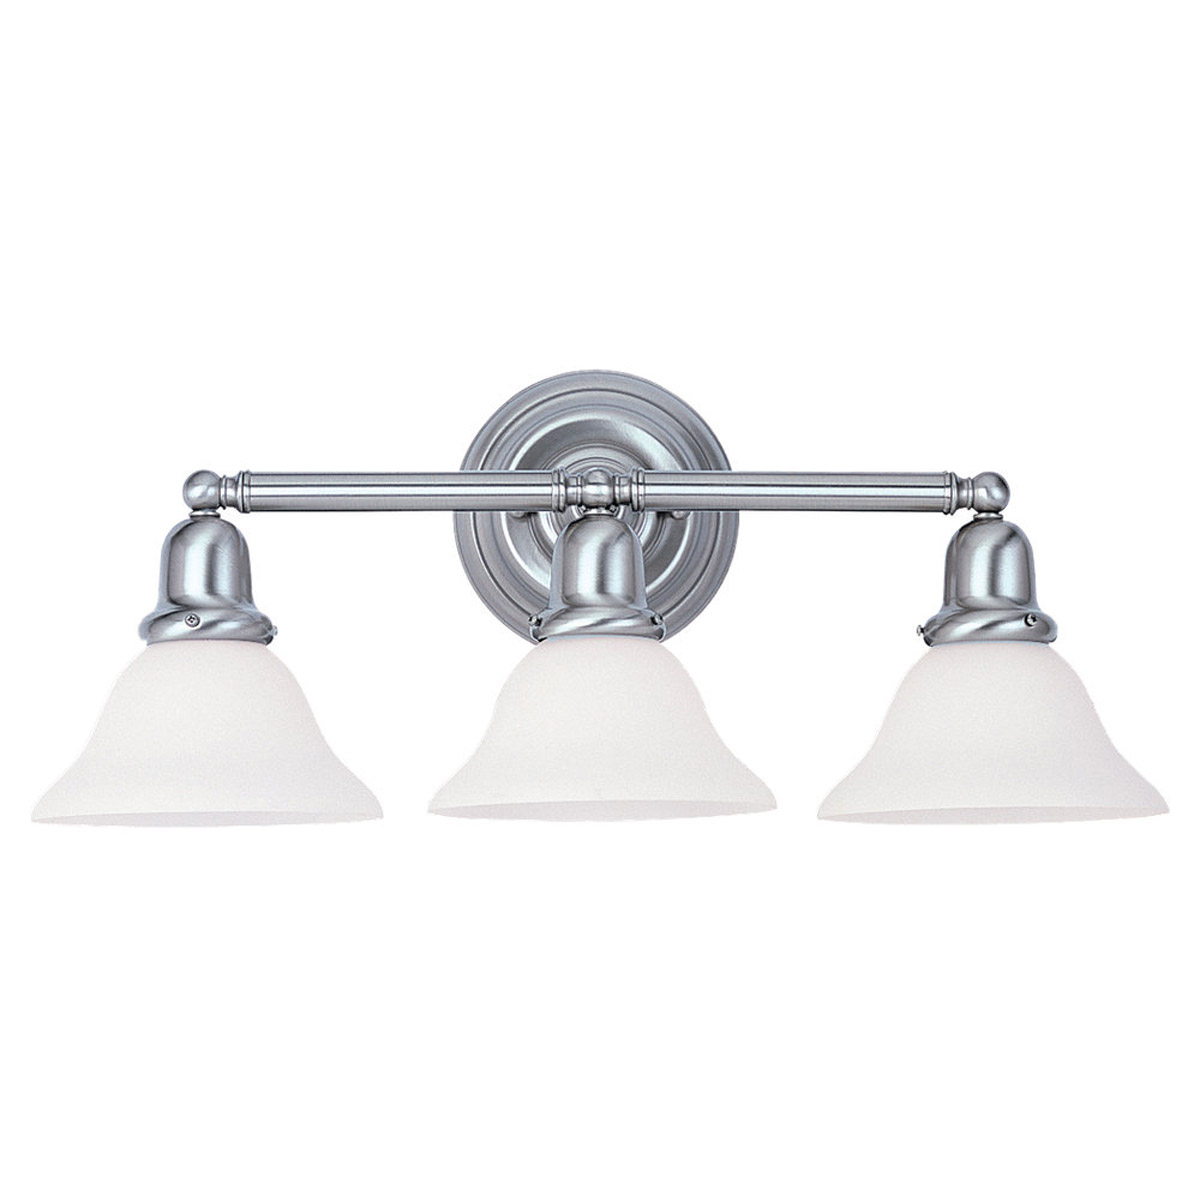 Sea Gull Lighting Sussex 3 Light Bath Vanity in Brushed Nickel 49066BLE-962 photo